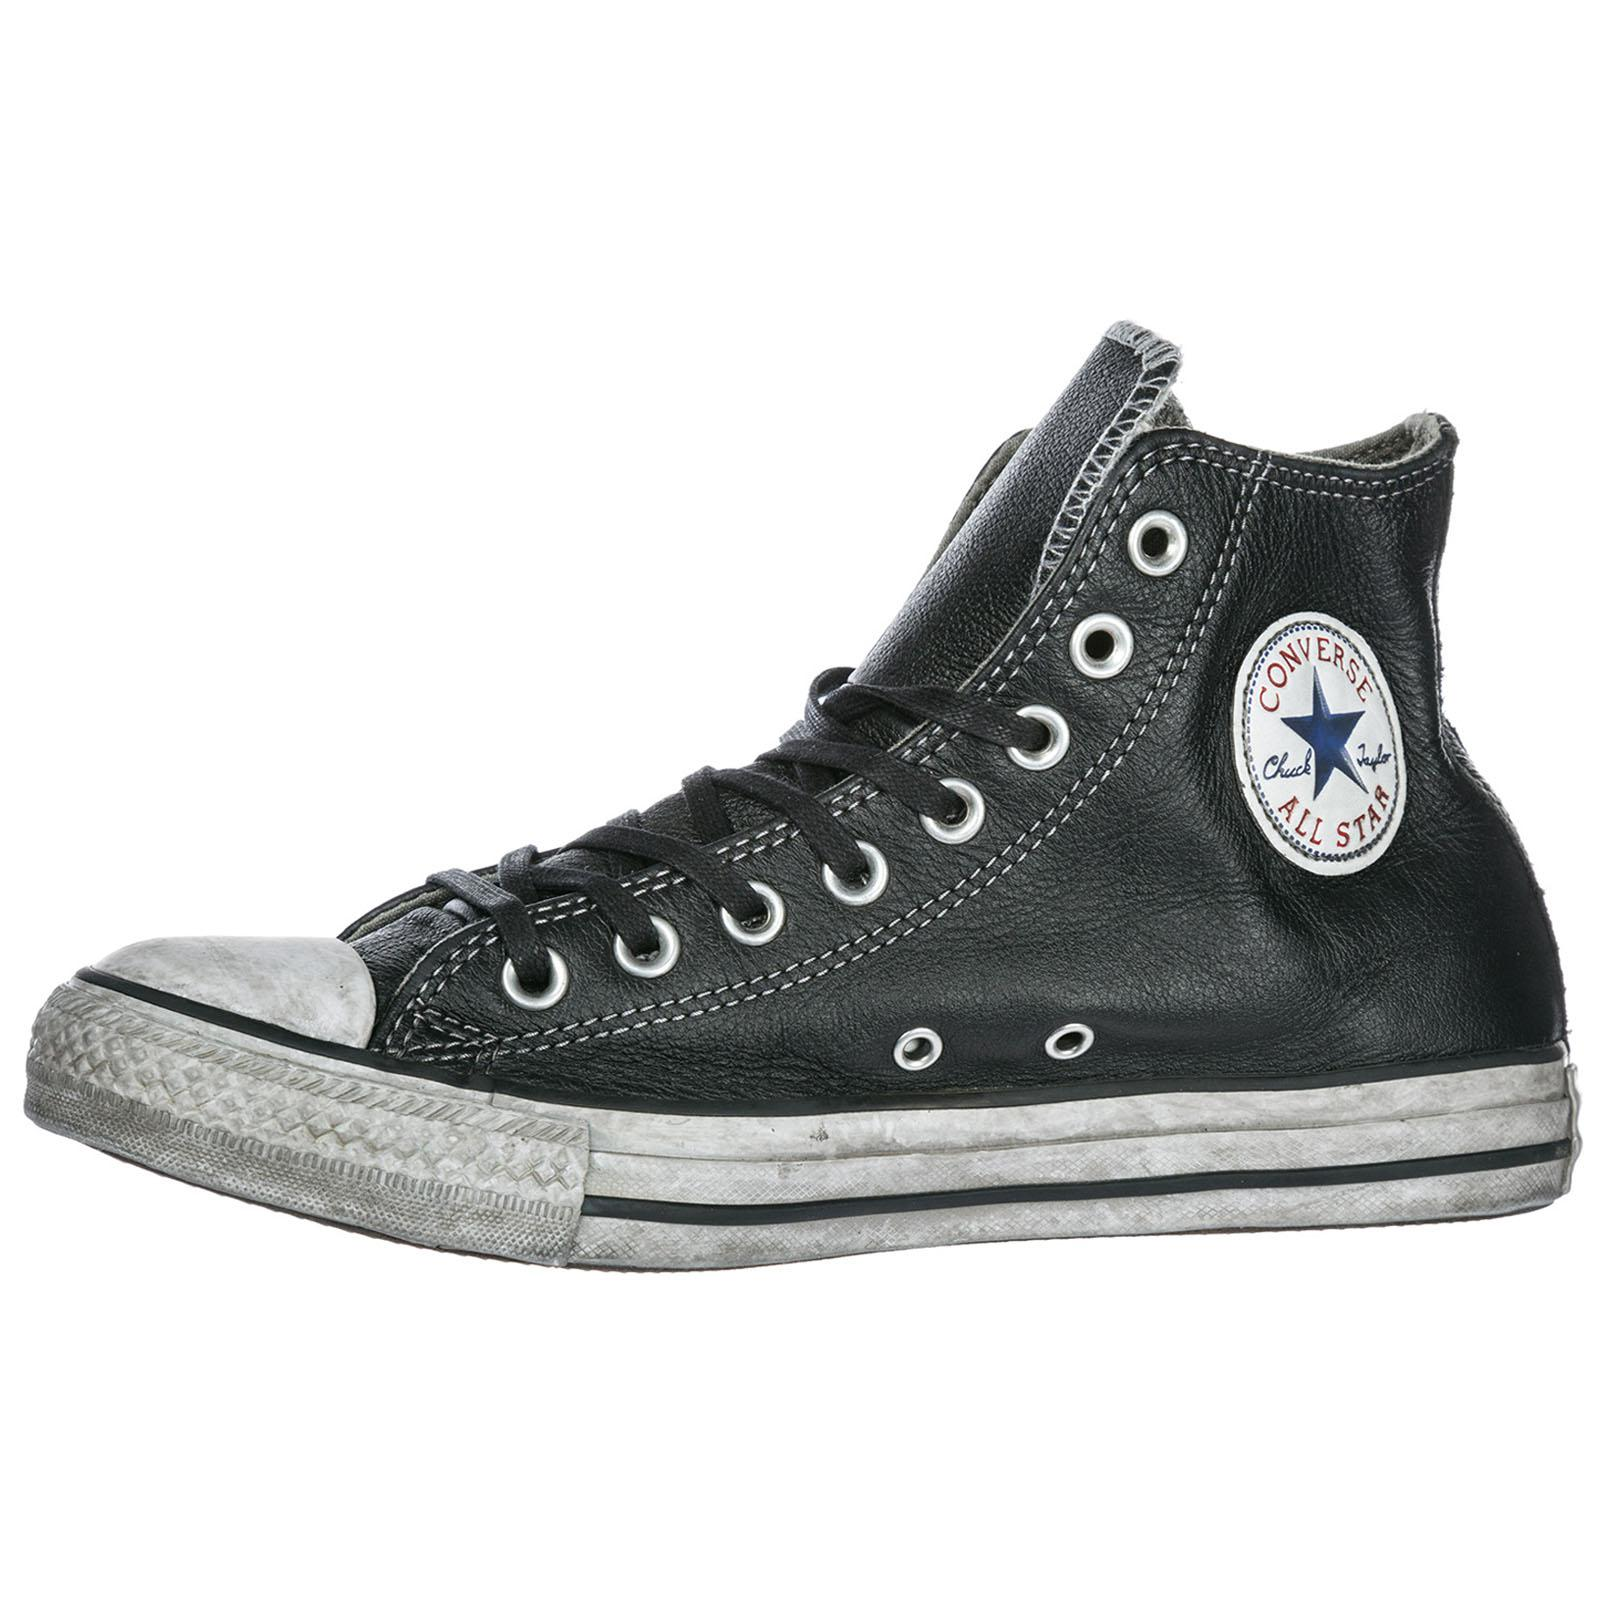 Converse Shoes High Top Leather Trainers Sneakers Limited Edition ...